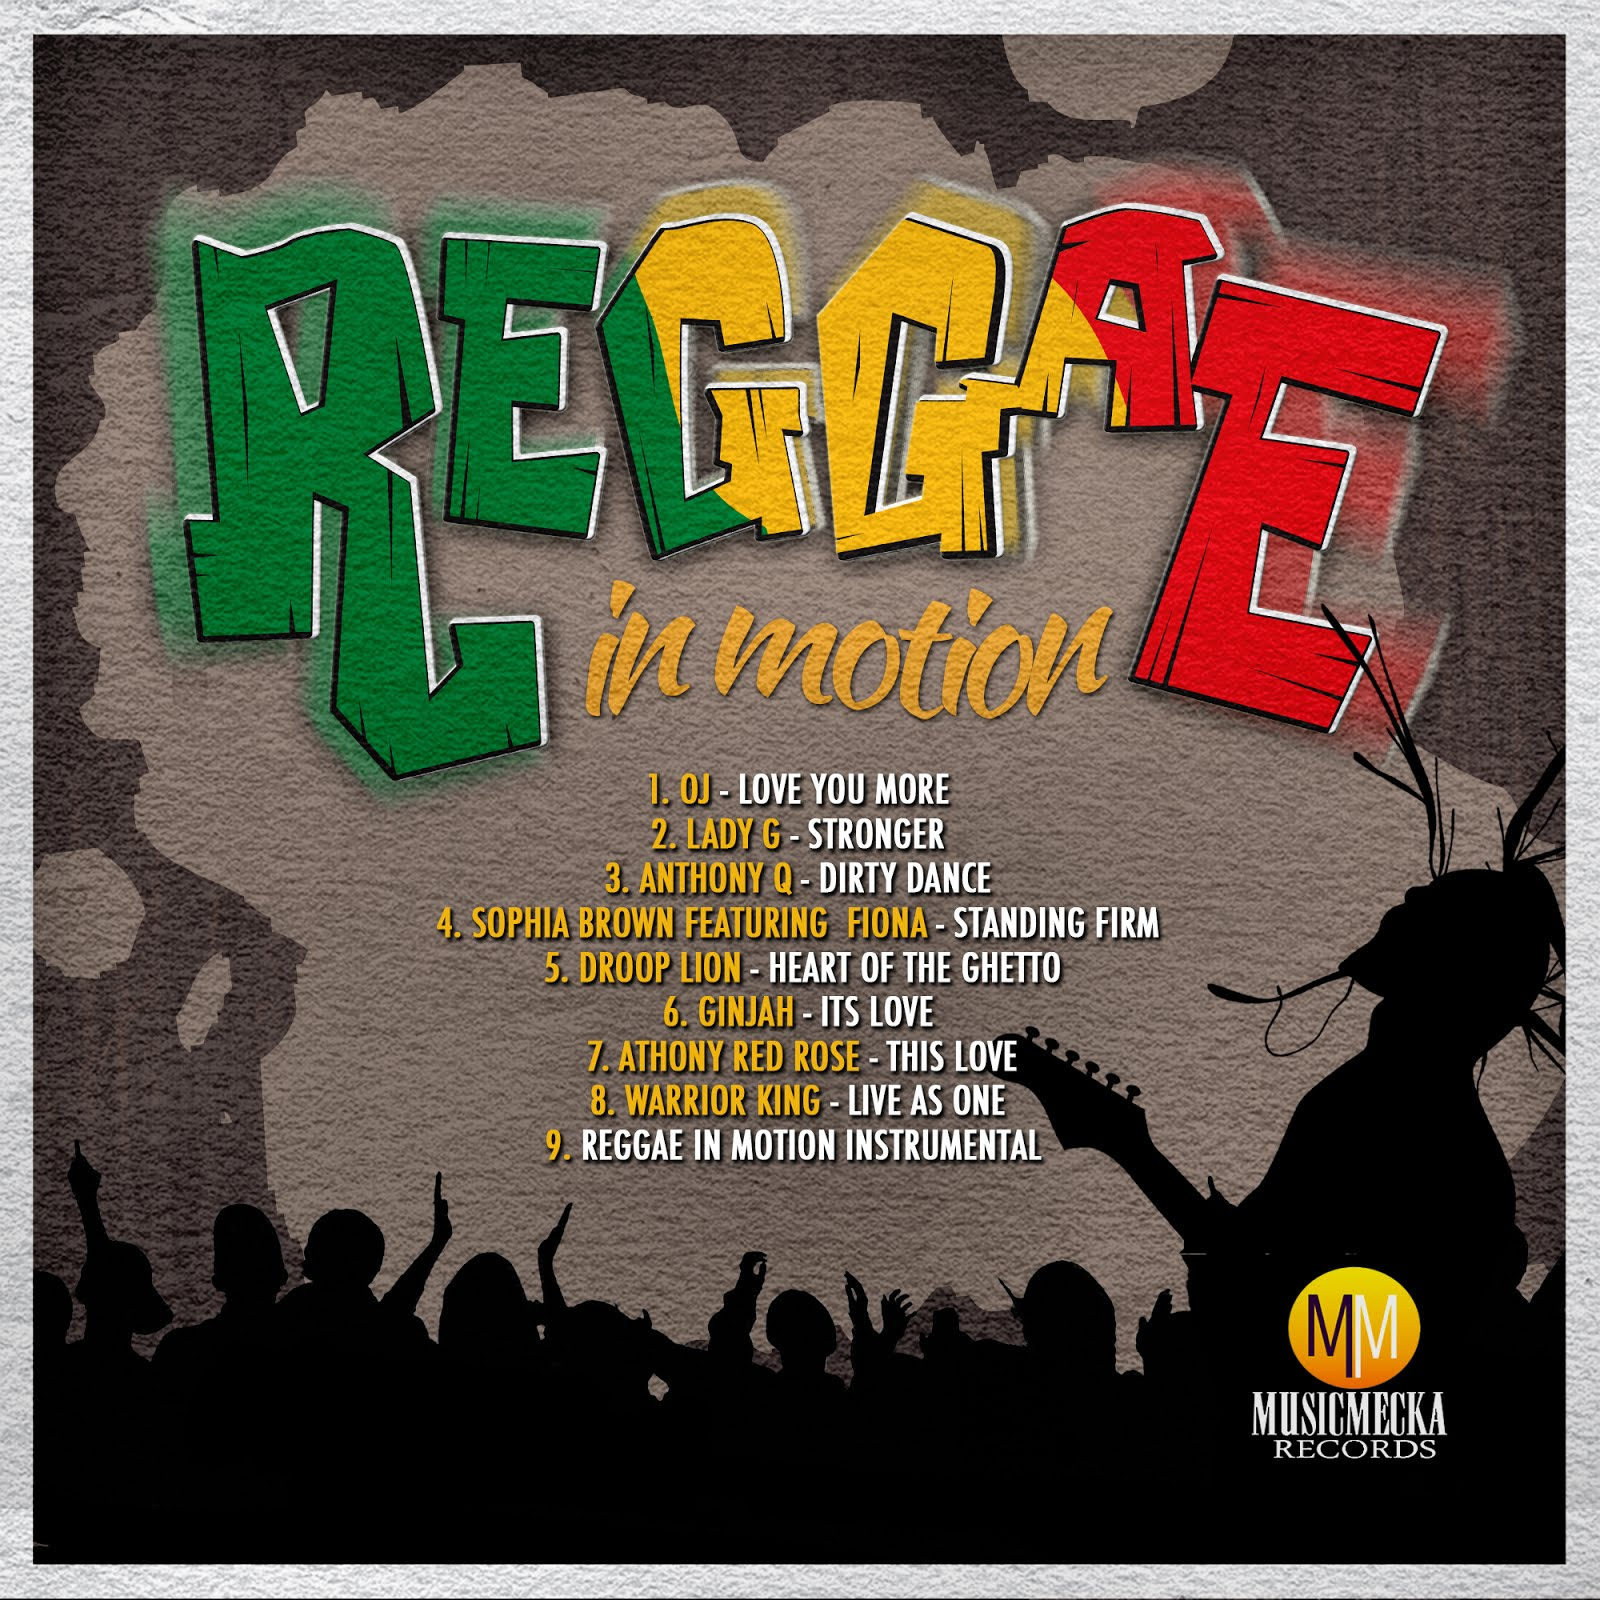 Reggae in motion riddim music mecka records - Welcome to the ghetto instrumental ...